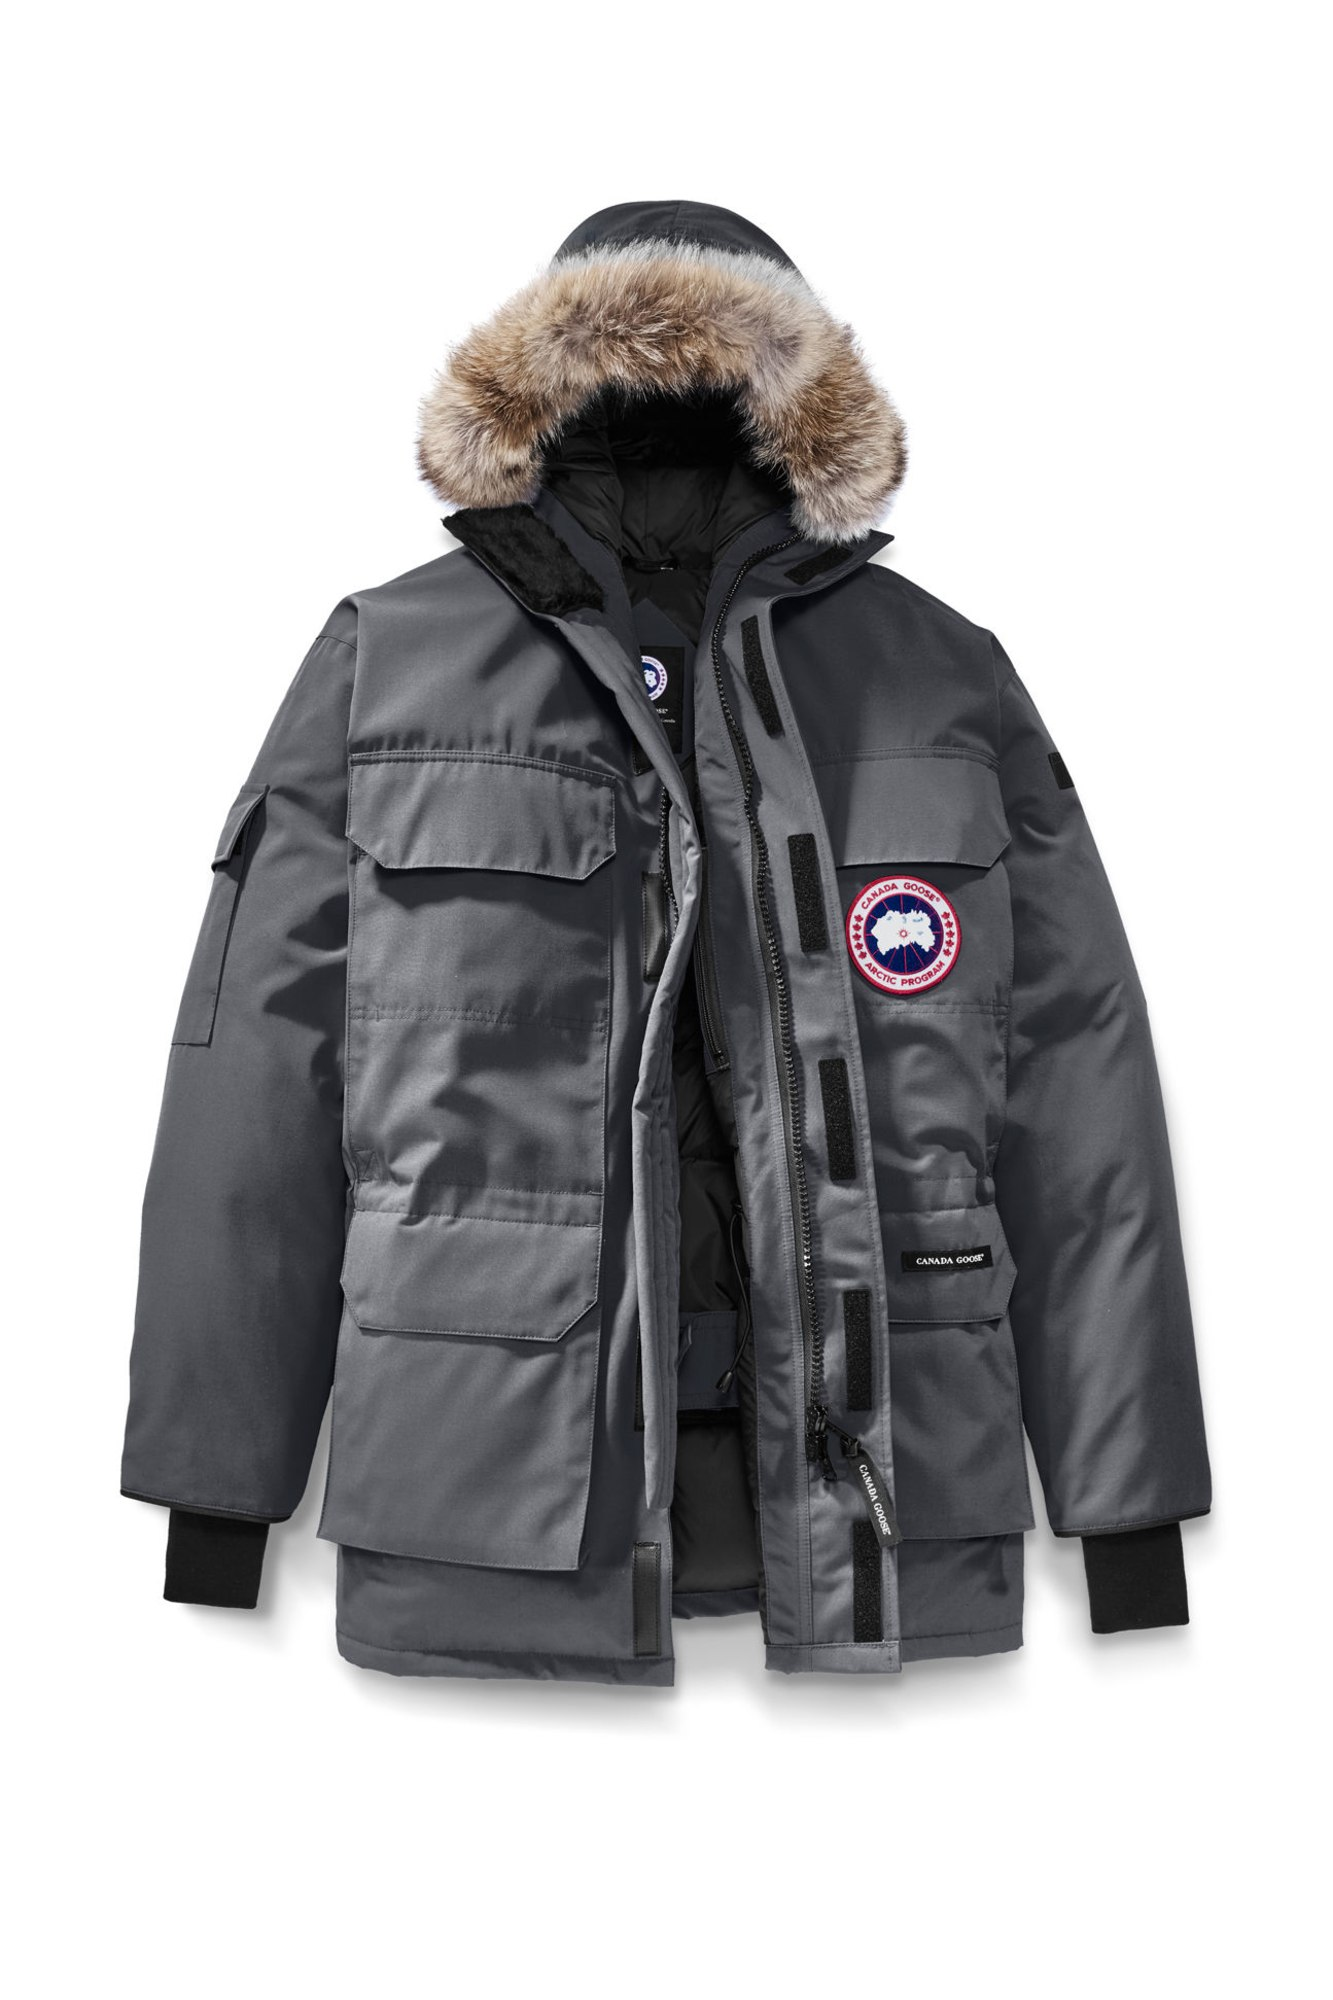 aa6c4aed630 Expedition Parka